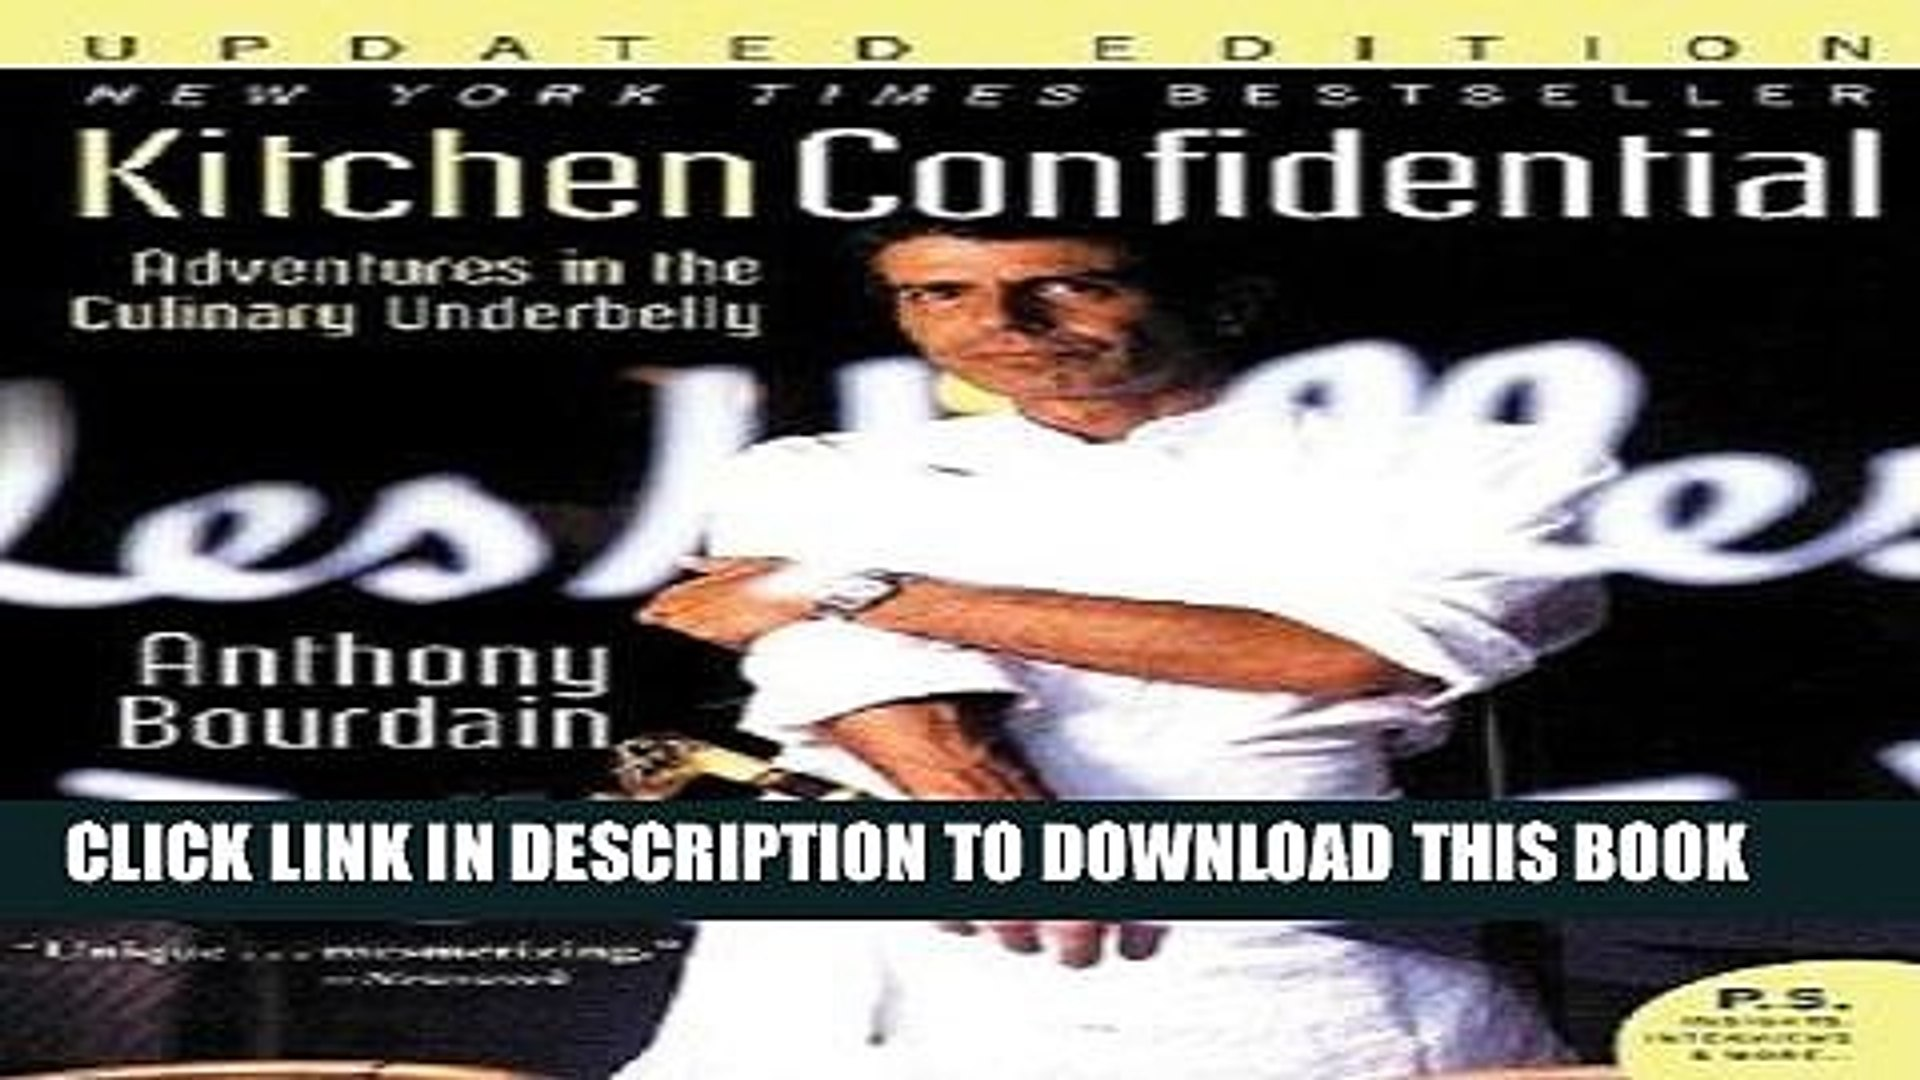 Adventures in the Culinary Underbelly Kitchen Confidential